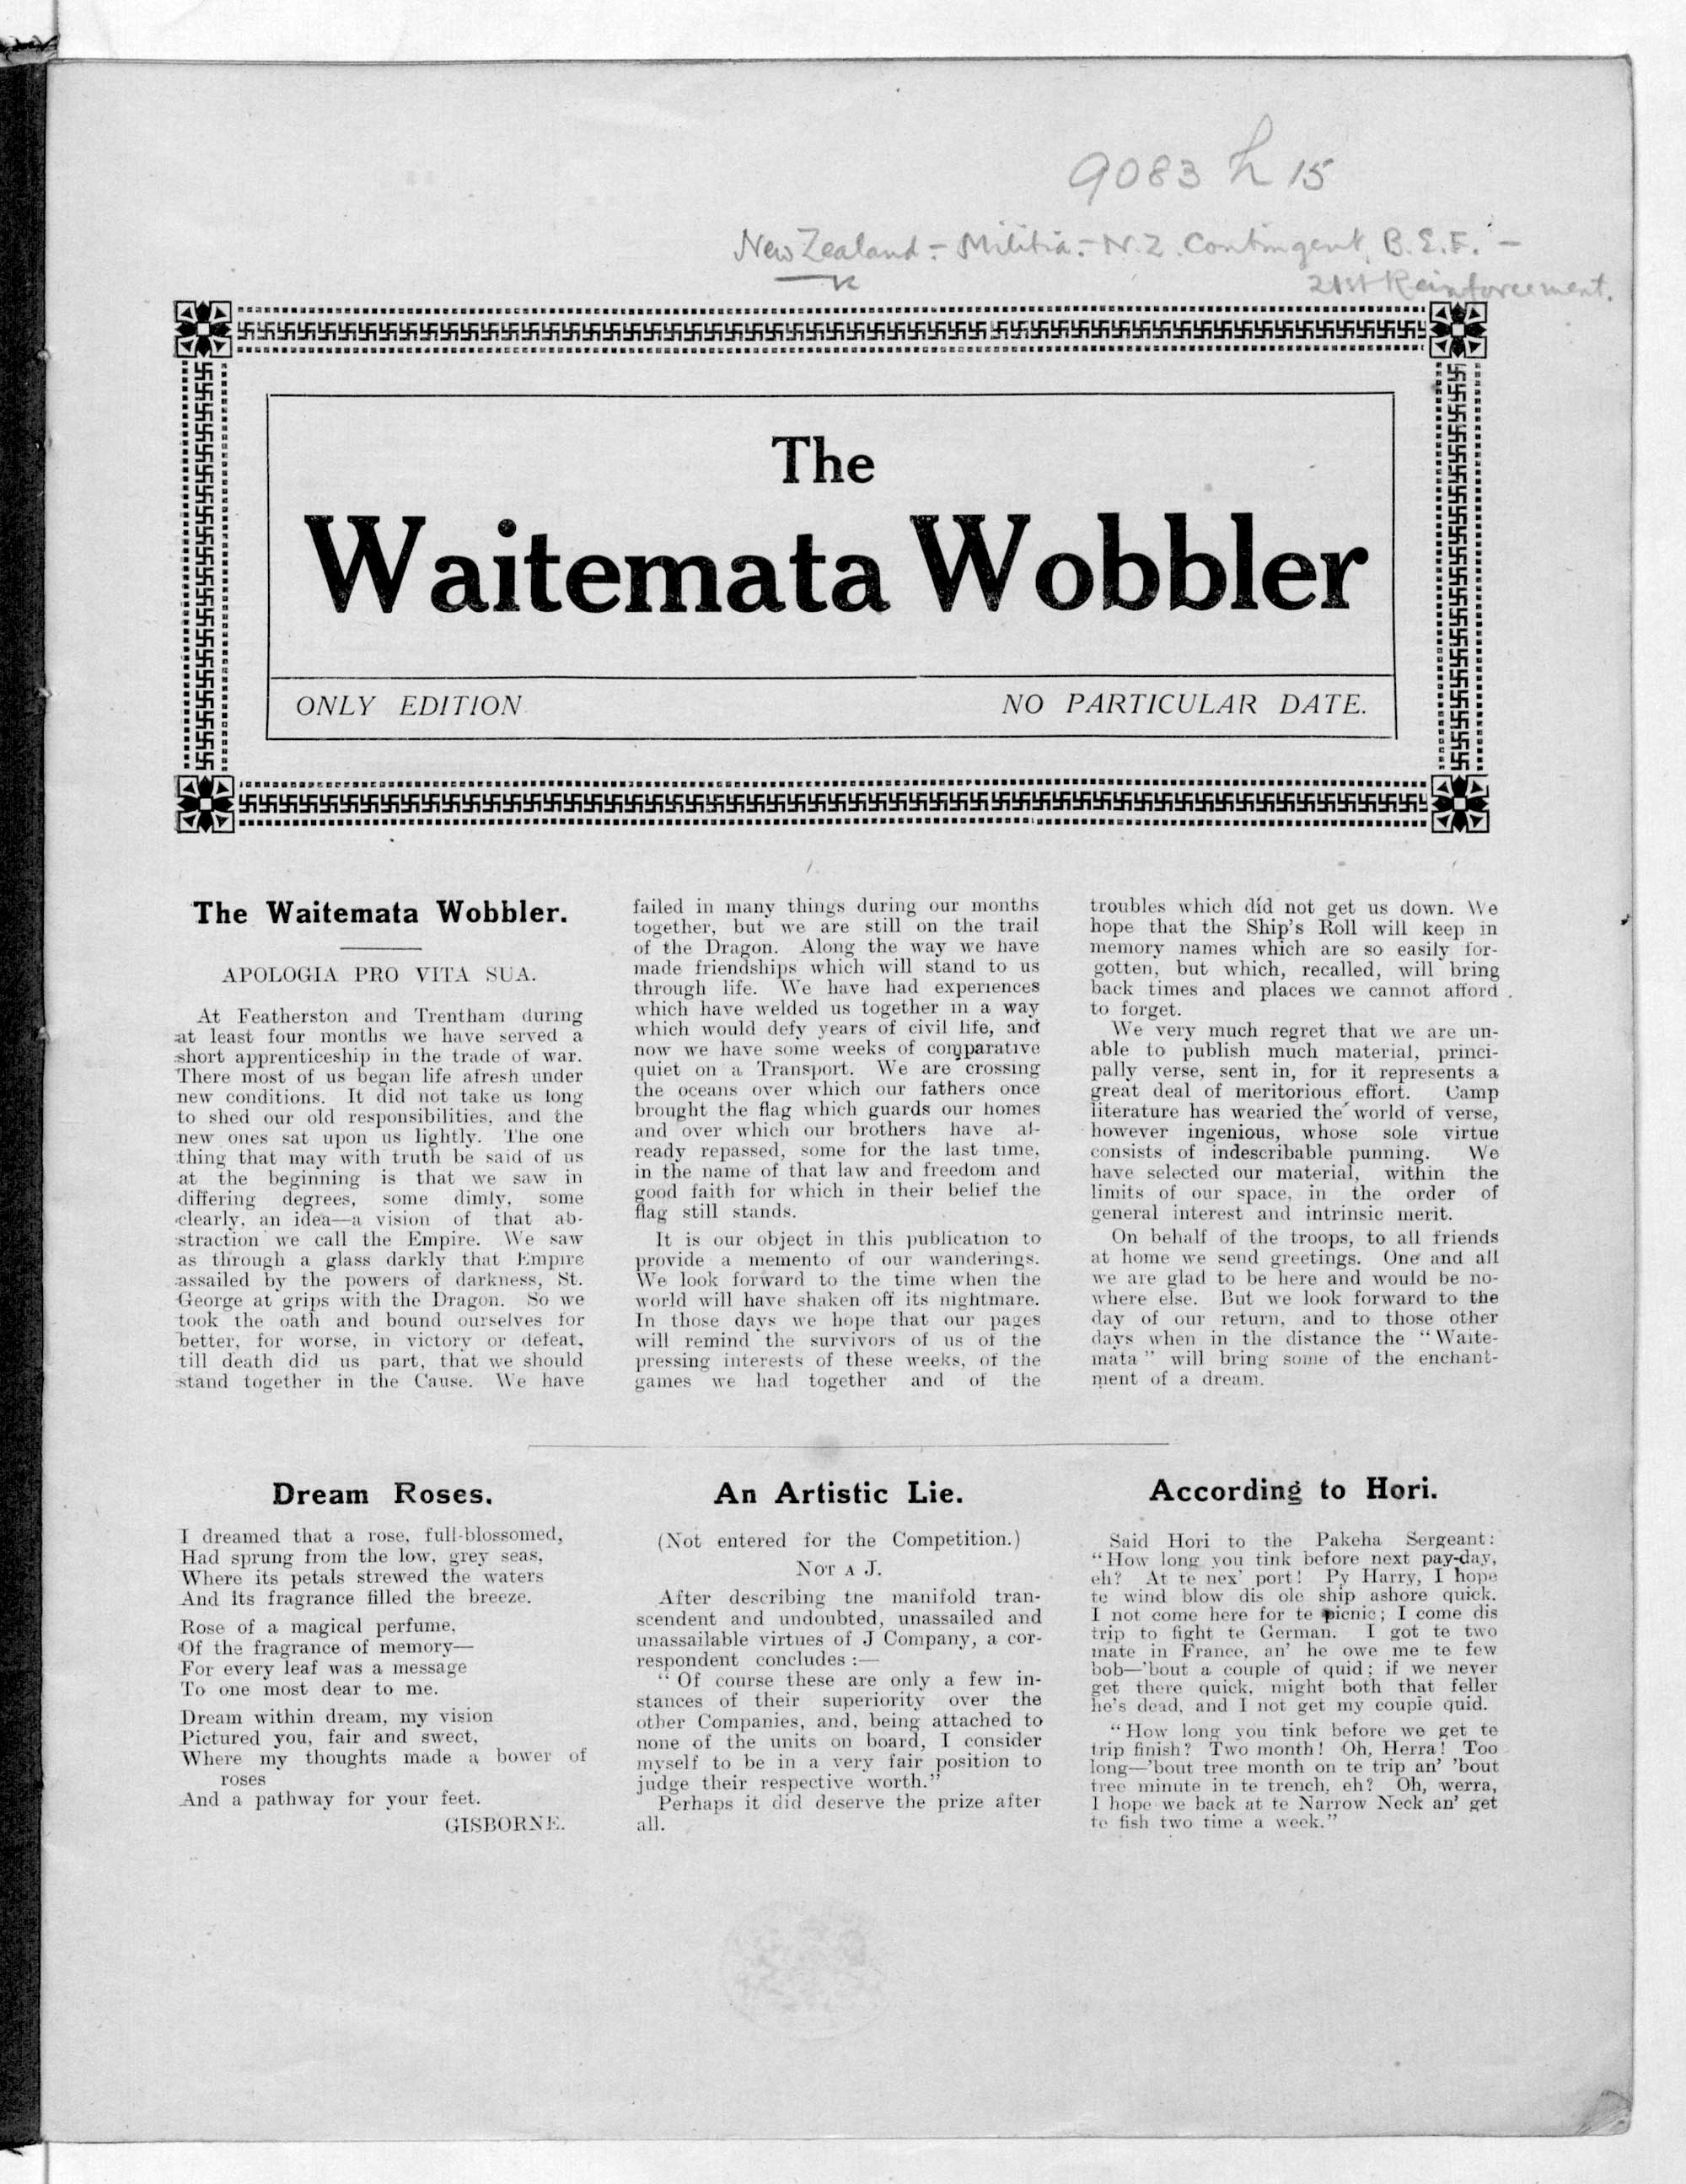 The Waitemata Wobbler